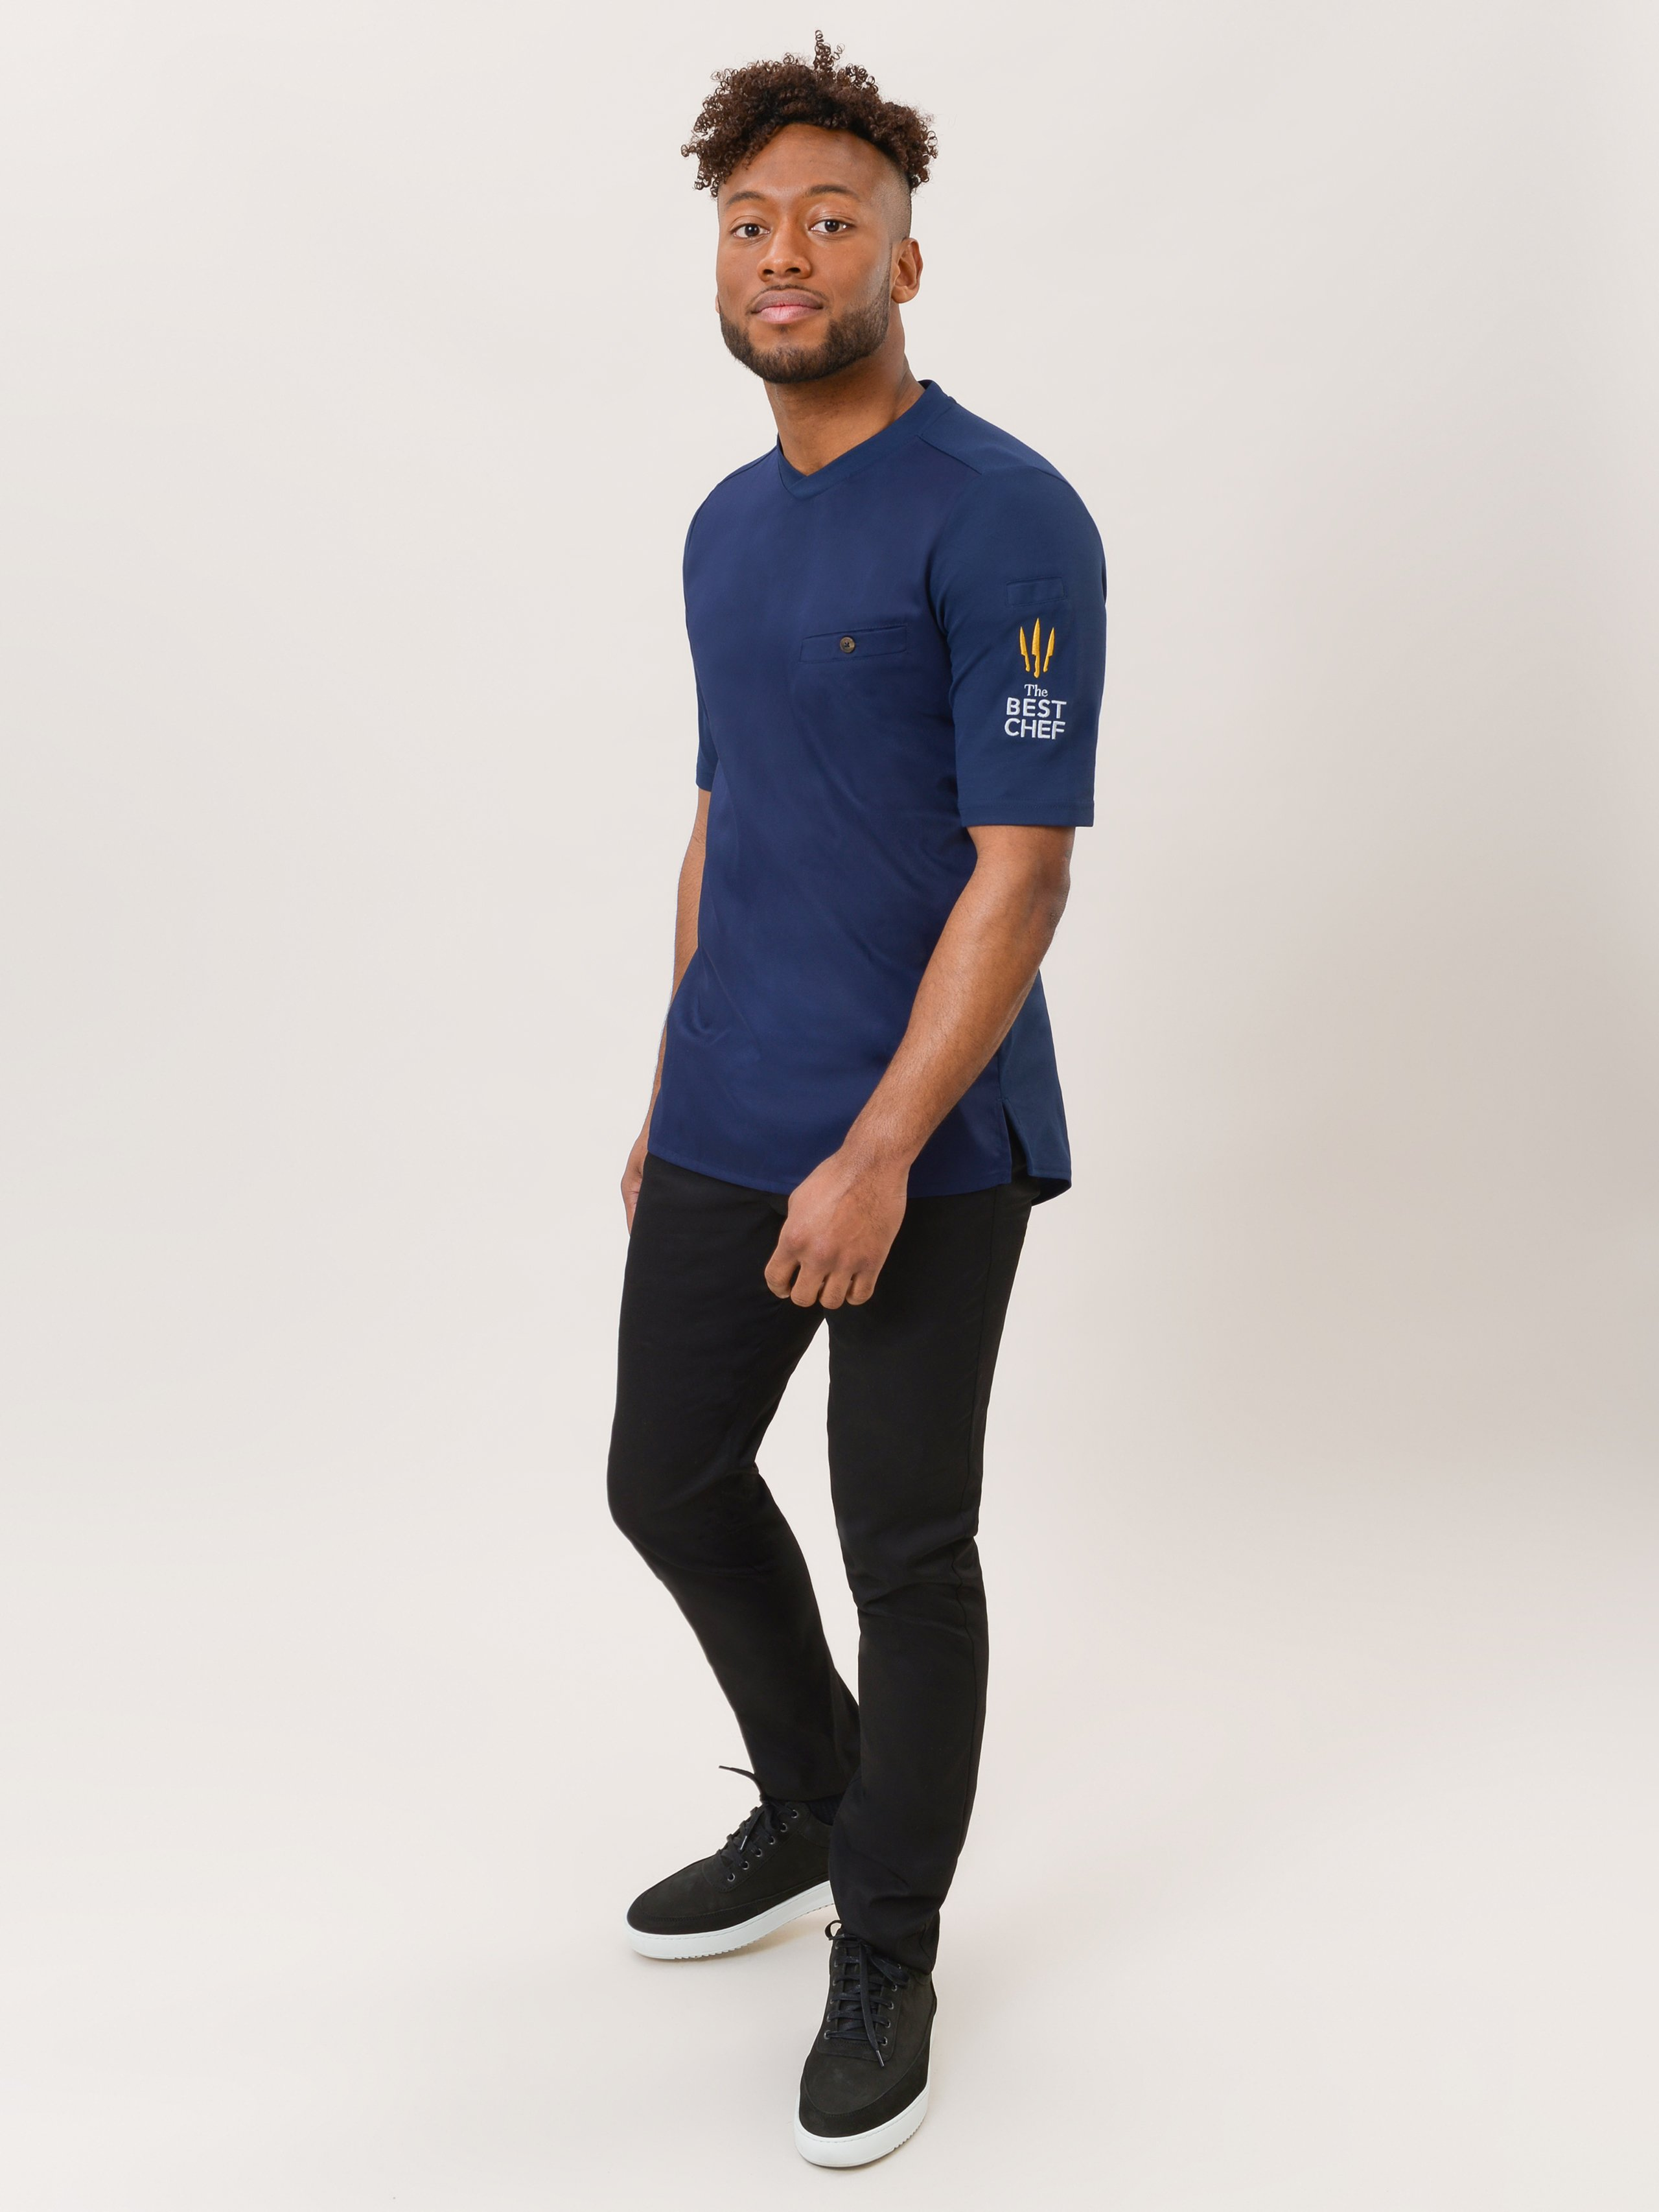 Chef Jacket The Best Chef Ferre Patriot Blue